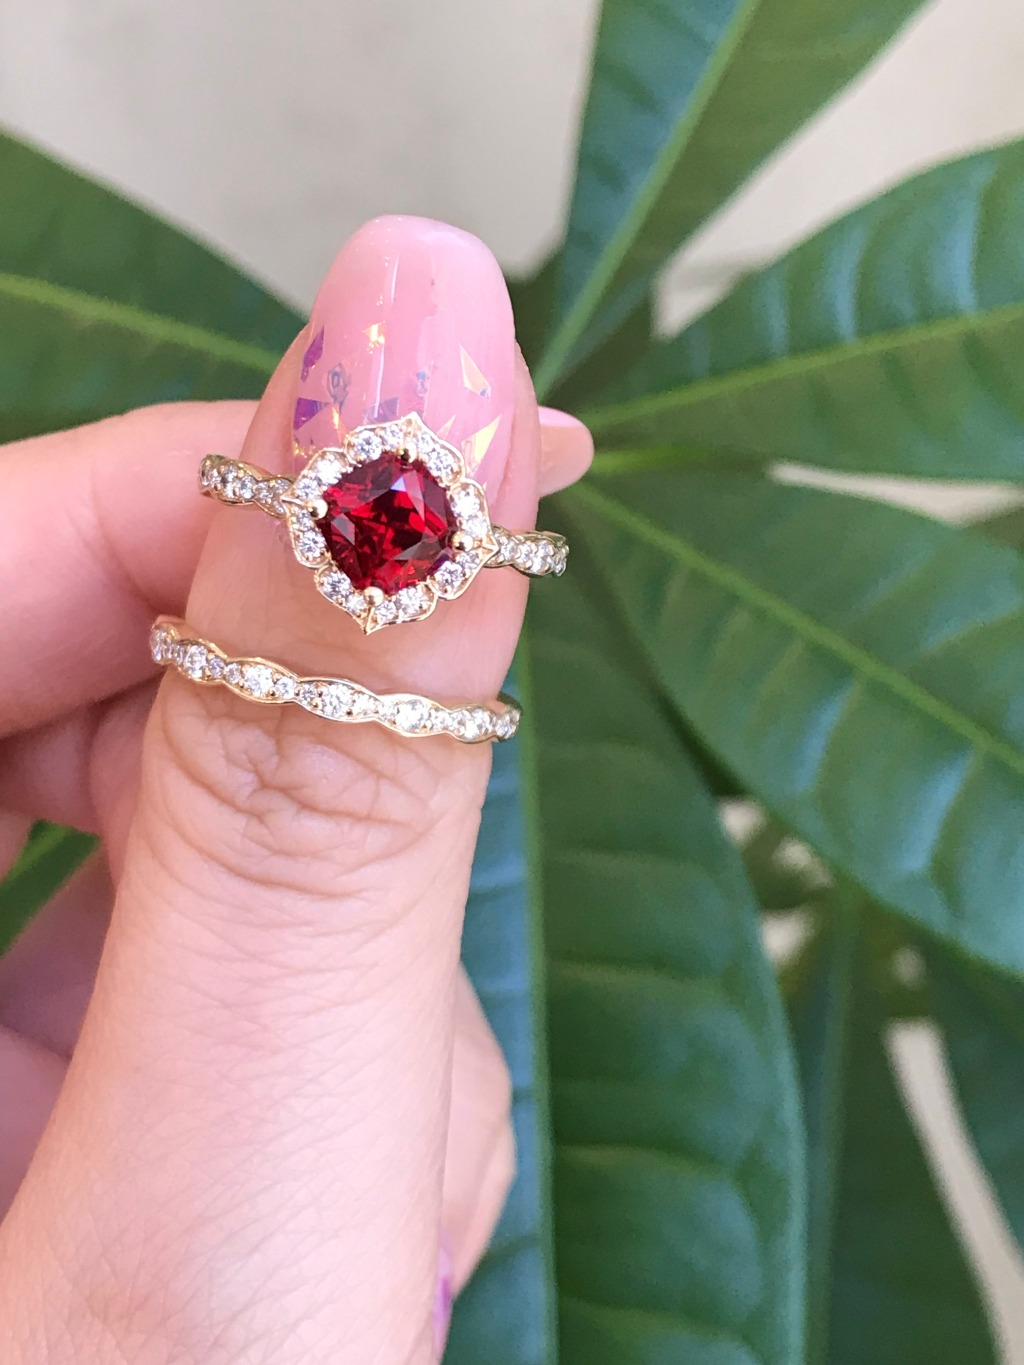 Rubies are red and she is just perfect! She is our cushion cut mini vintage floral ruby ring set in scalloped diamond band paired with